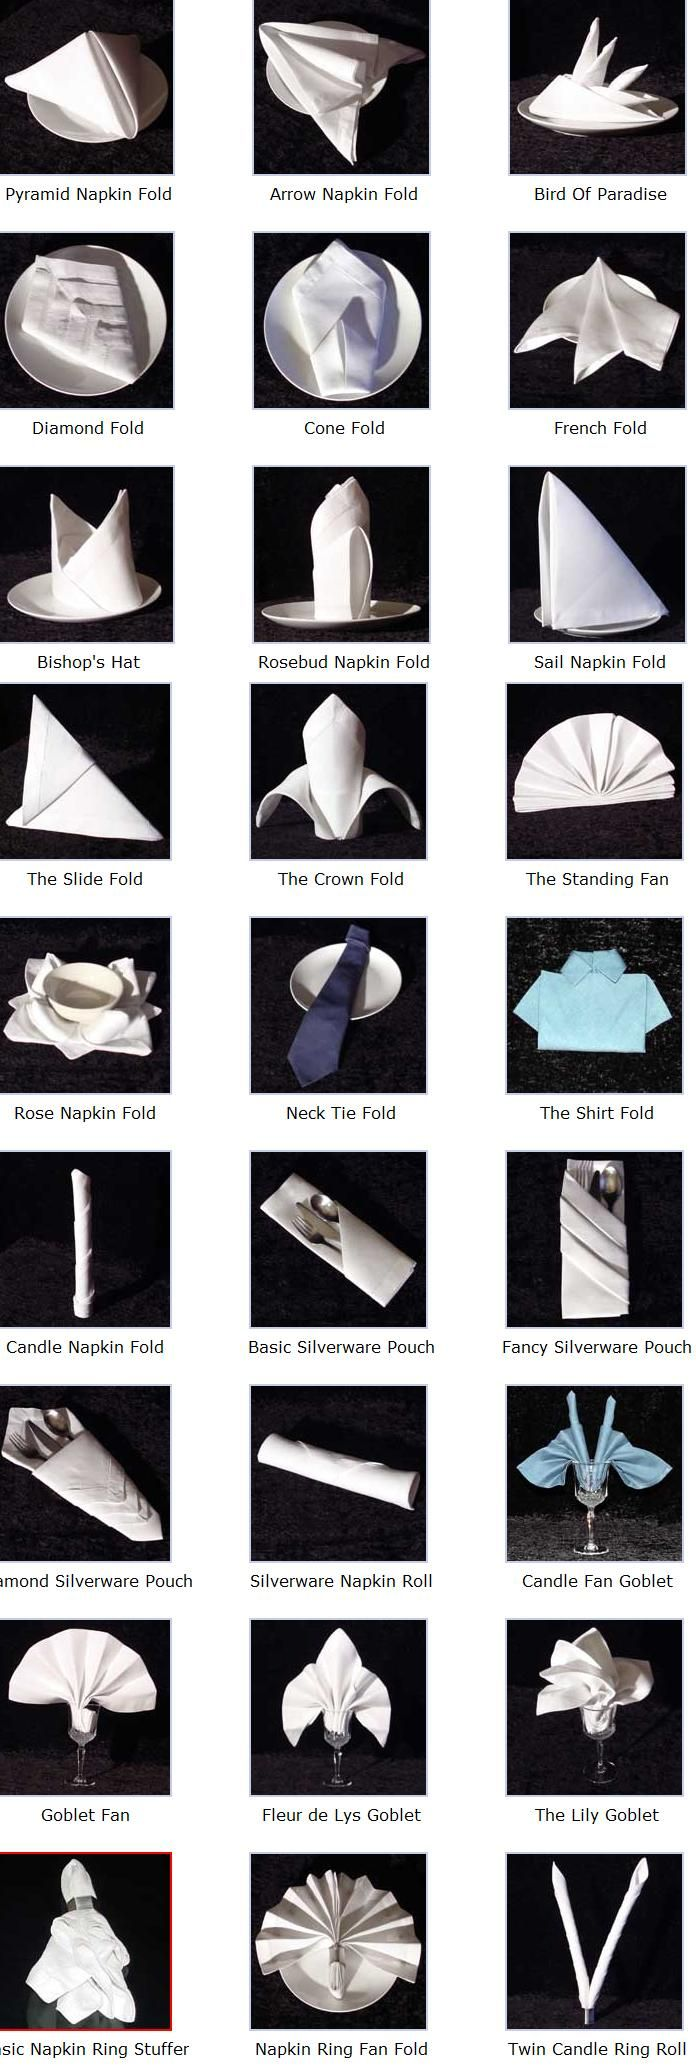 SO COOL A CHART STEP BY STEP ON NAPKIN DESIGN FOLDING. http://www.annabelchaffer.com/categories/Dining-Accessories/